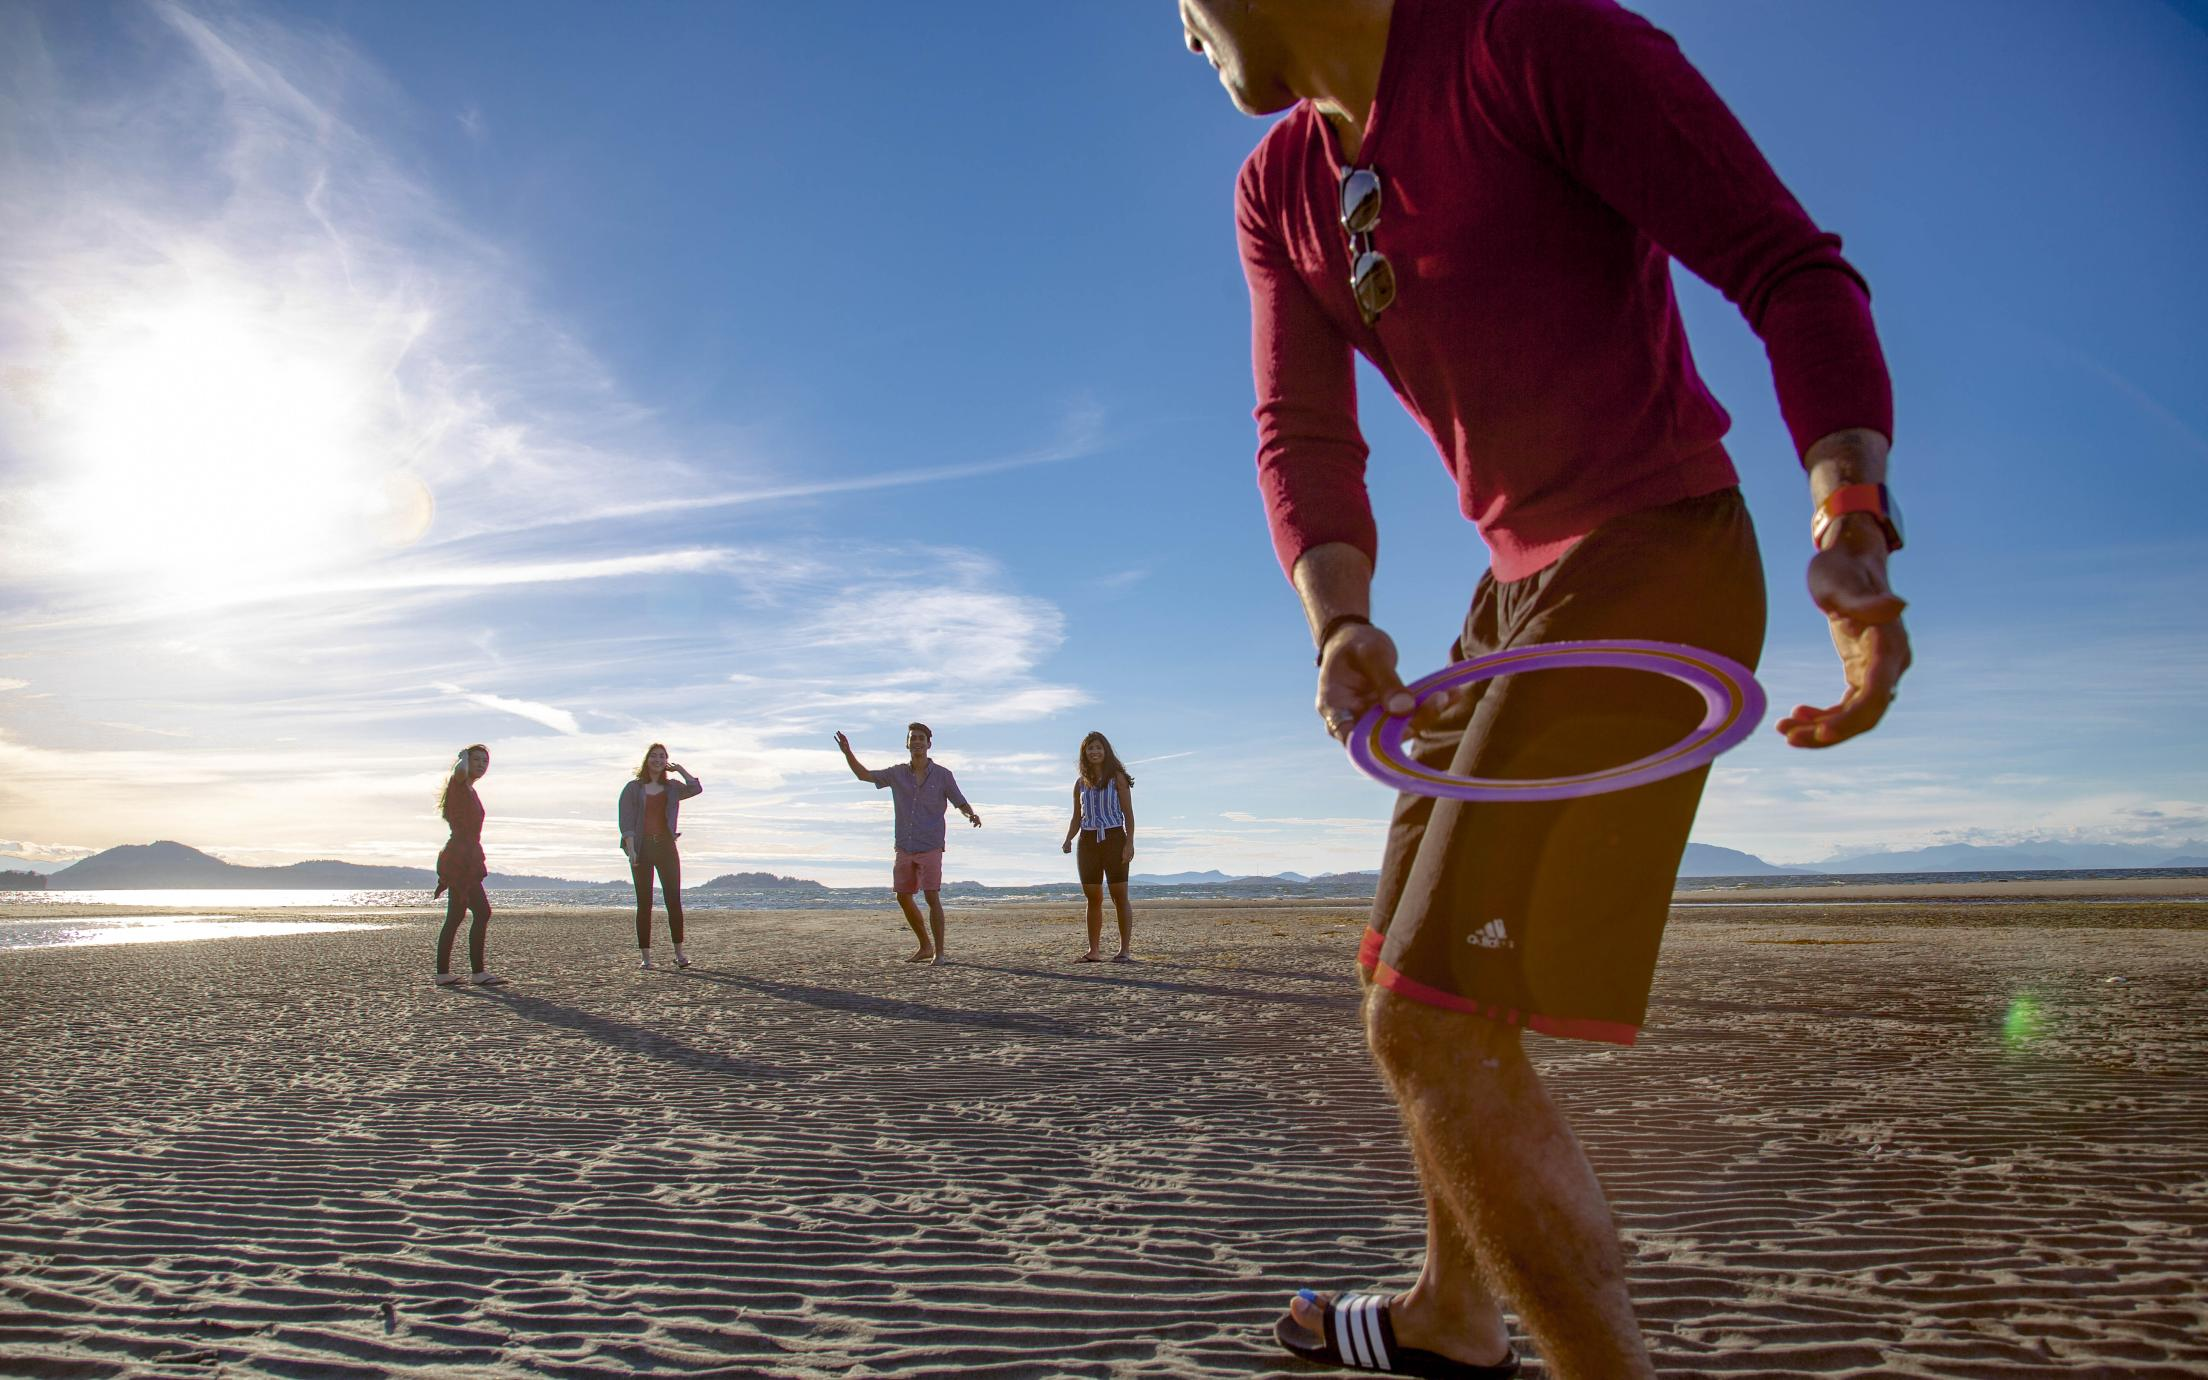 Students play frisbee at a beach